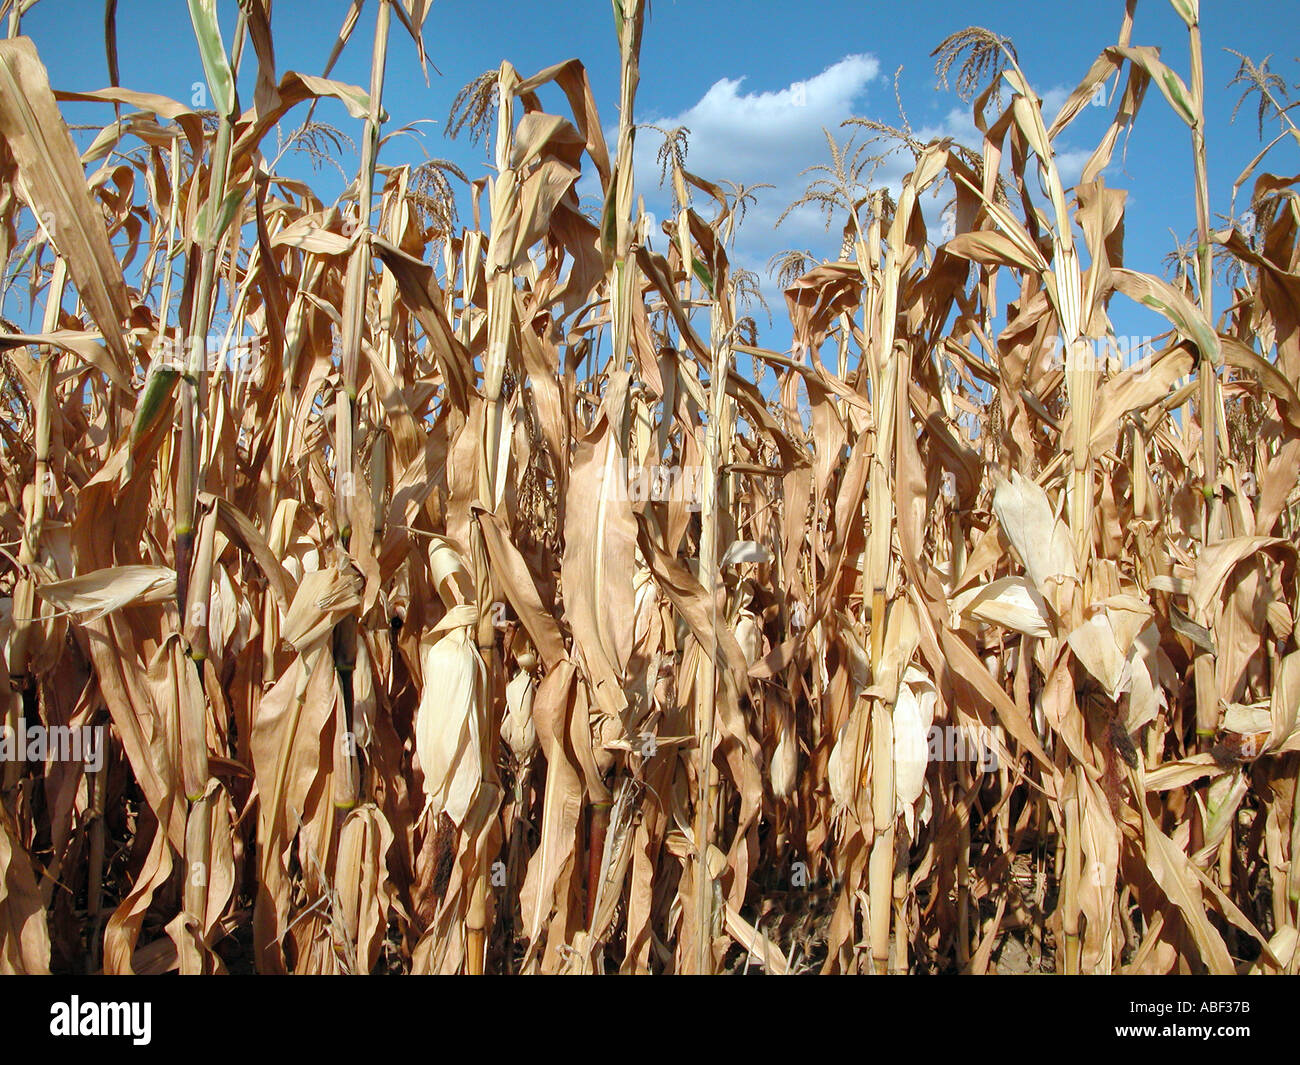 scarcity of water dried plants - Stock Image